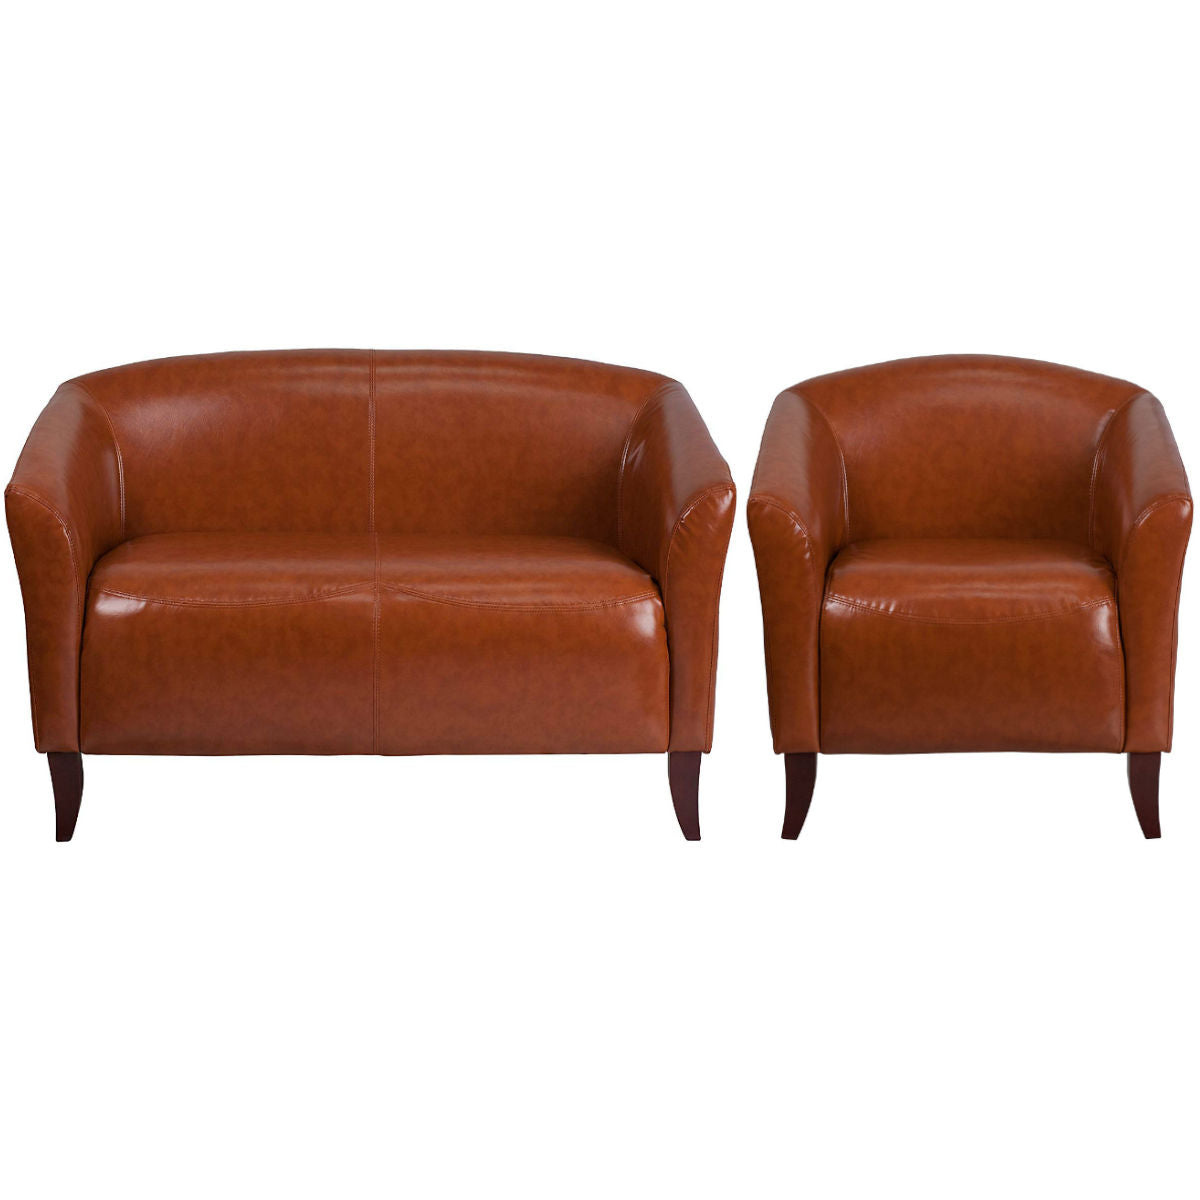 Flash Furniture HERCULES Imperial Series Cognac Leather Loveseat and Chair